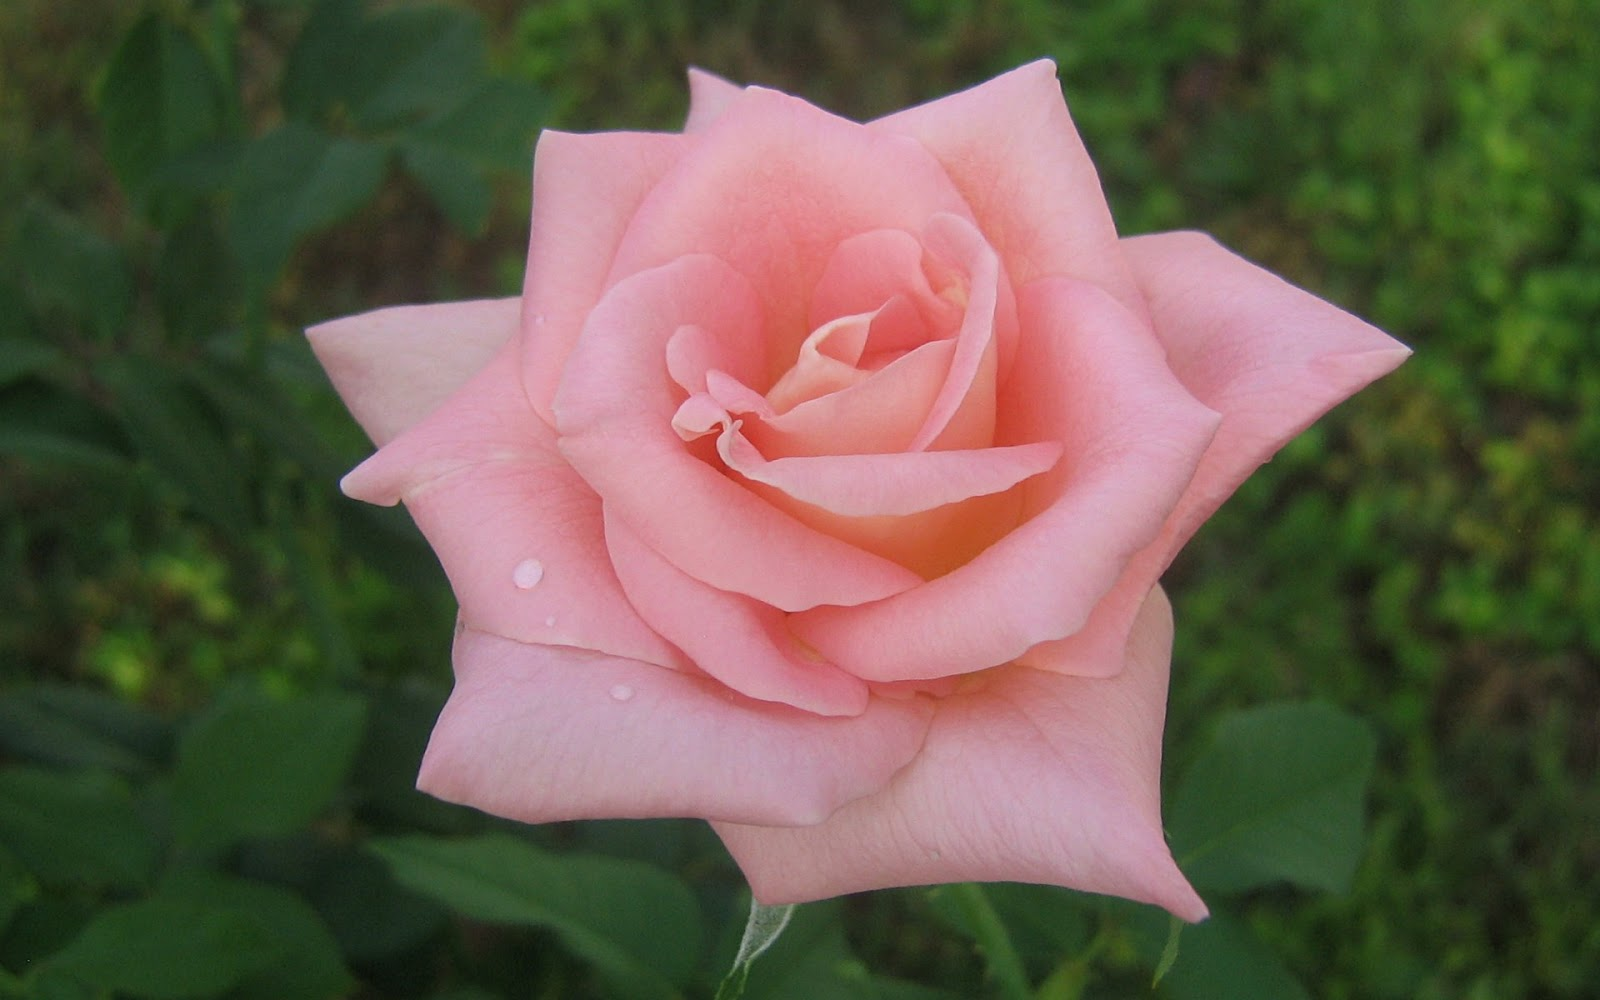 Canada Floral Delivery Blog The Varying Emotions Of A Rose